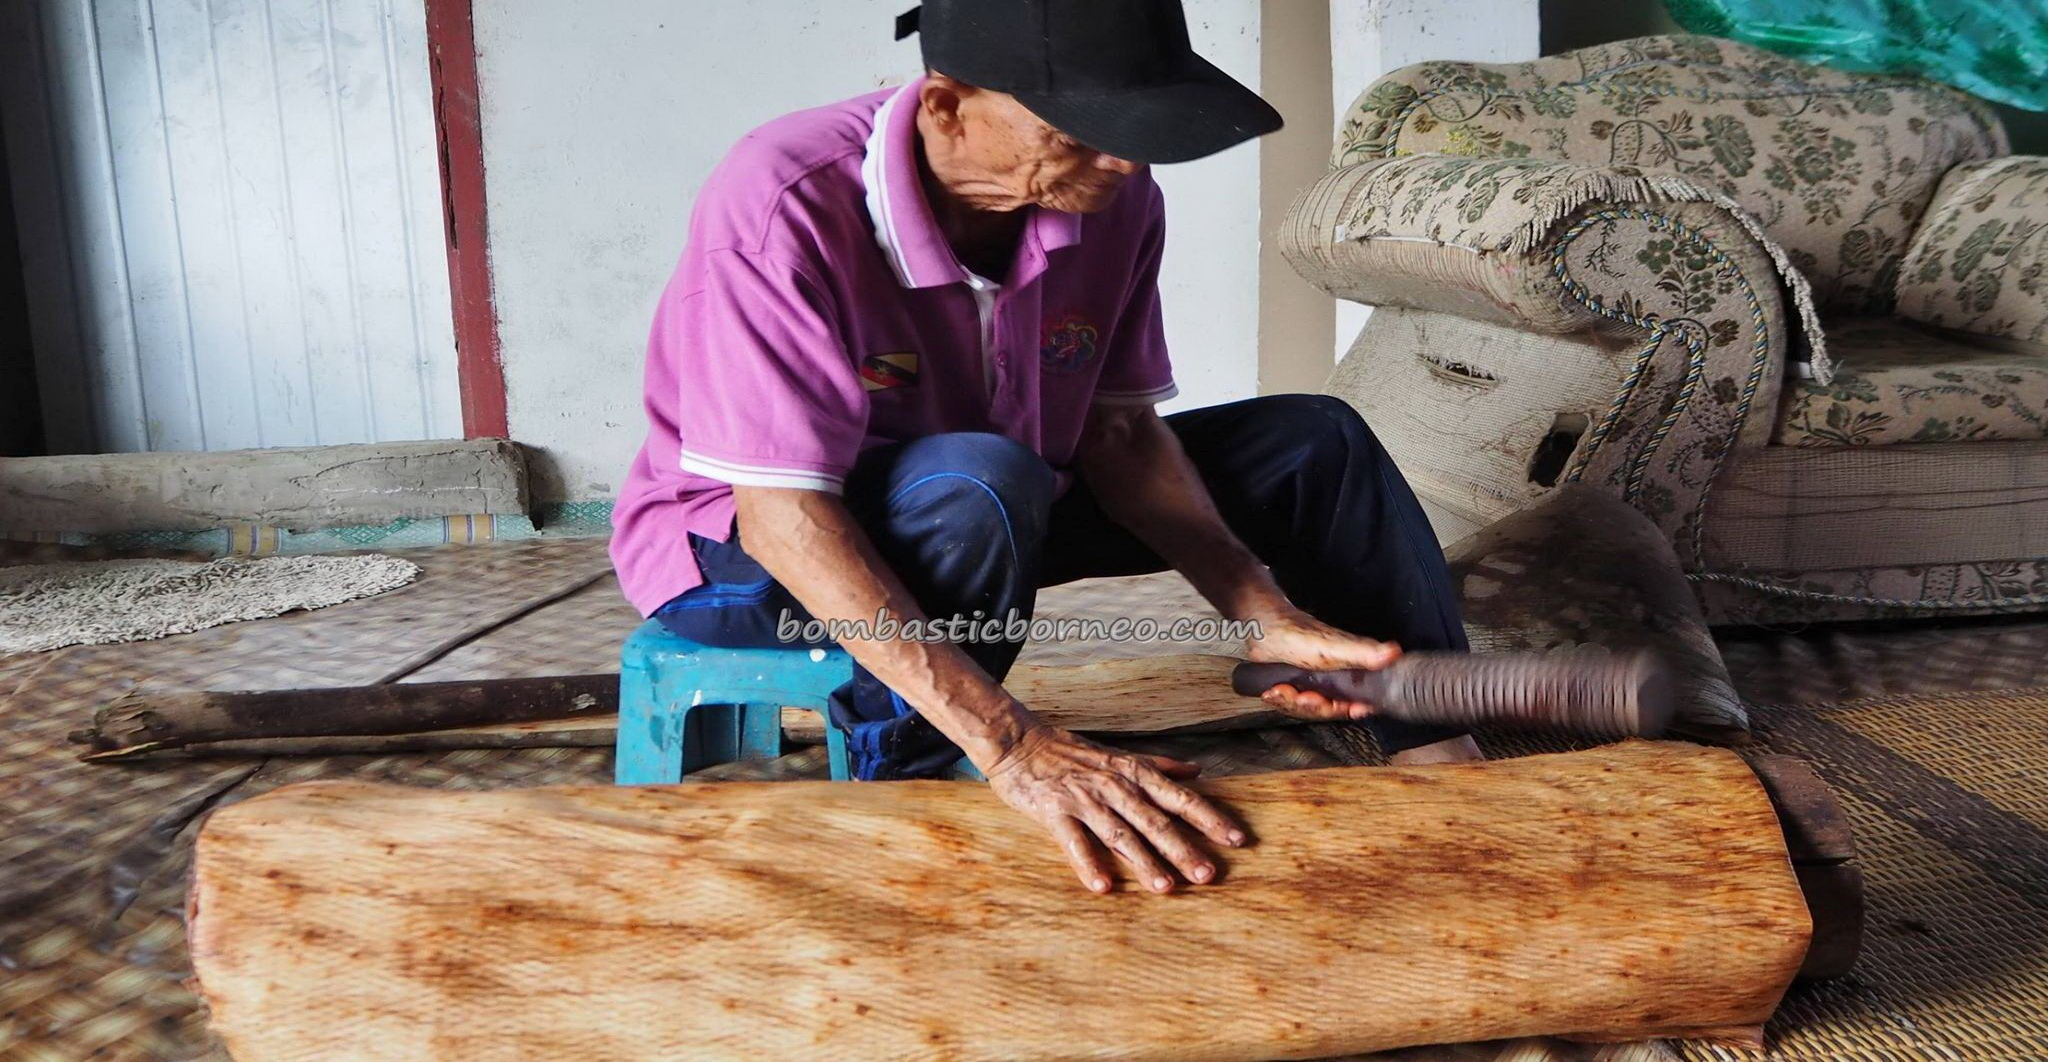 Kampung Tang Itong, kulit kayu topi, handicrafts, clothing, Kraftangan, authentic, backpackers, native, Lun Bawang artisan, Borneo, Lawas, Limbang, tourist attraction, traditional, travel guide, 老越砂拉越,